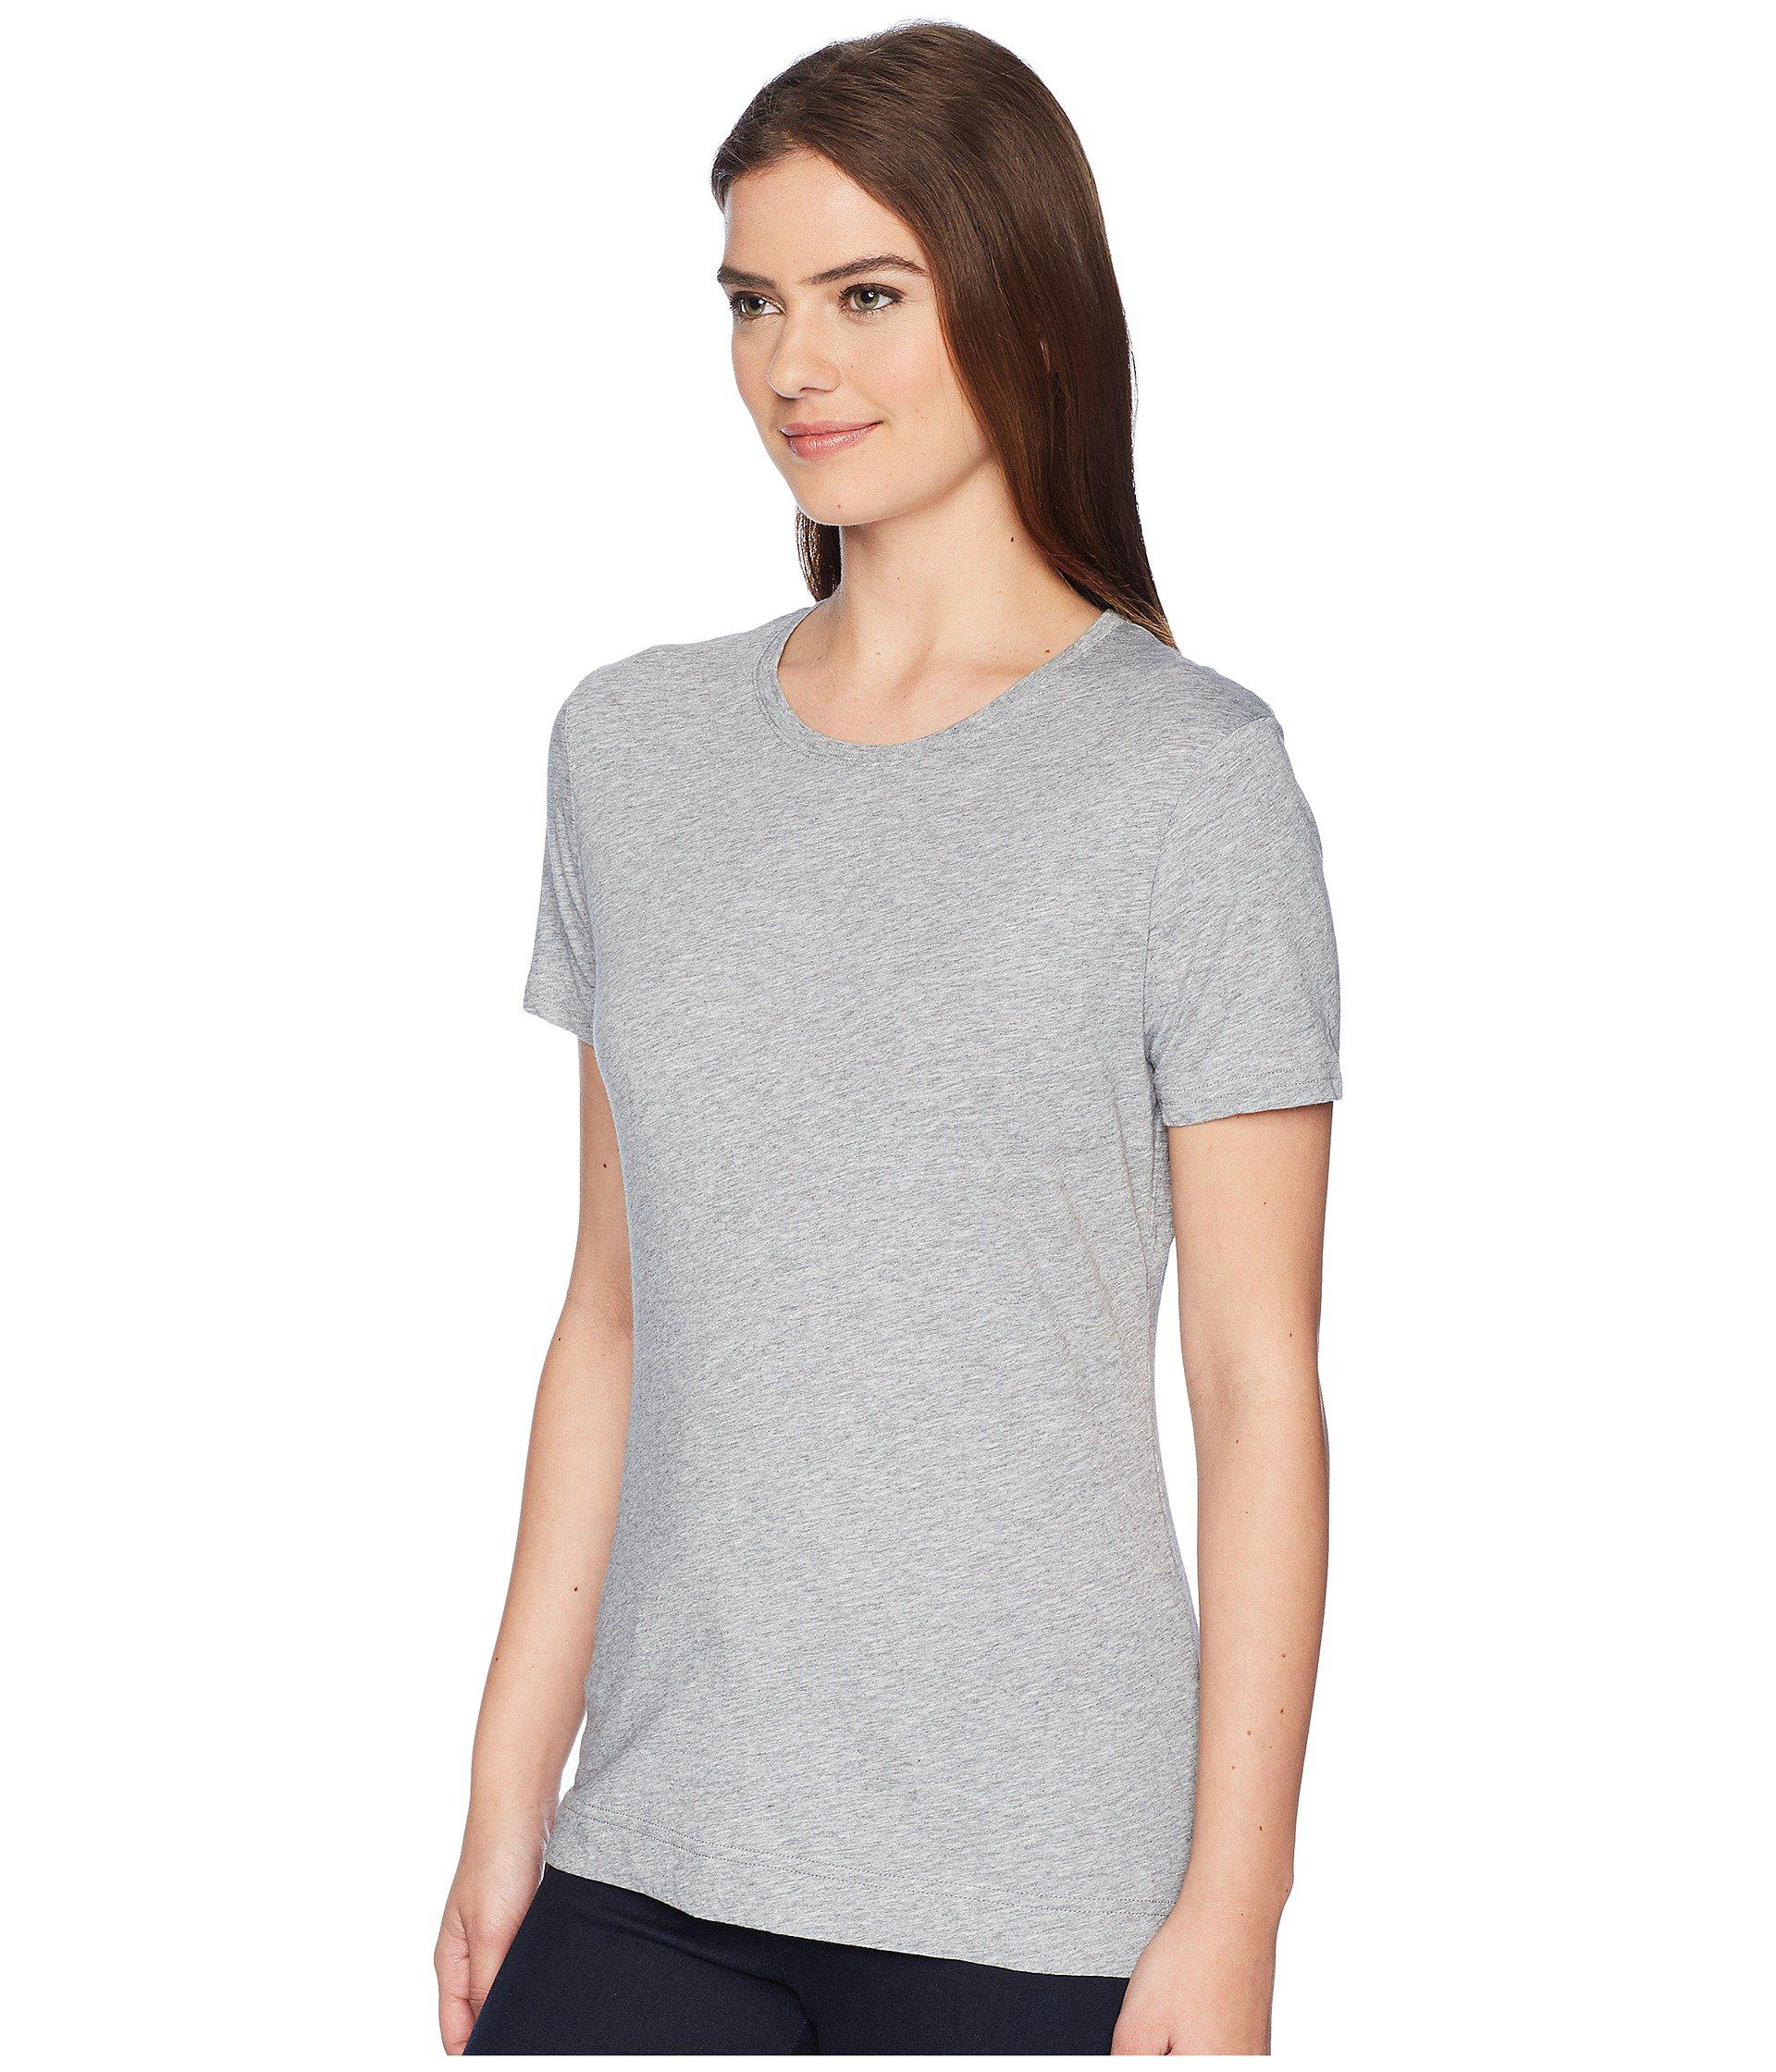 4b79105a761 Lyst - Adam Lippes Short Sleeve Crew Neck Core Tee (black) Women s T Shirt  in Gray - Save 31.578947368421055%